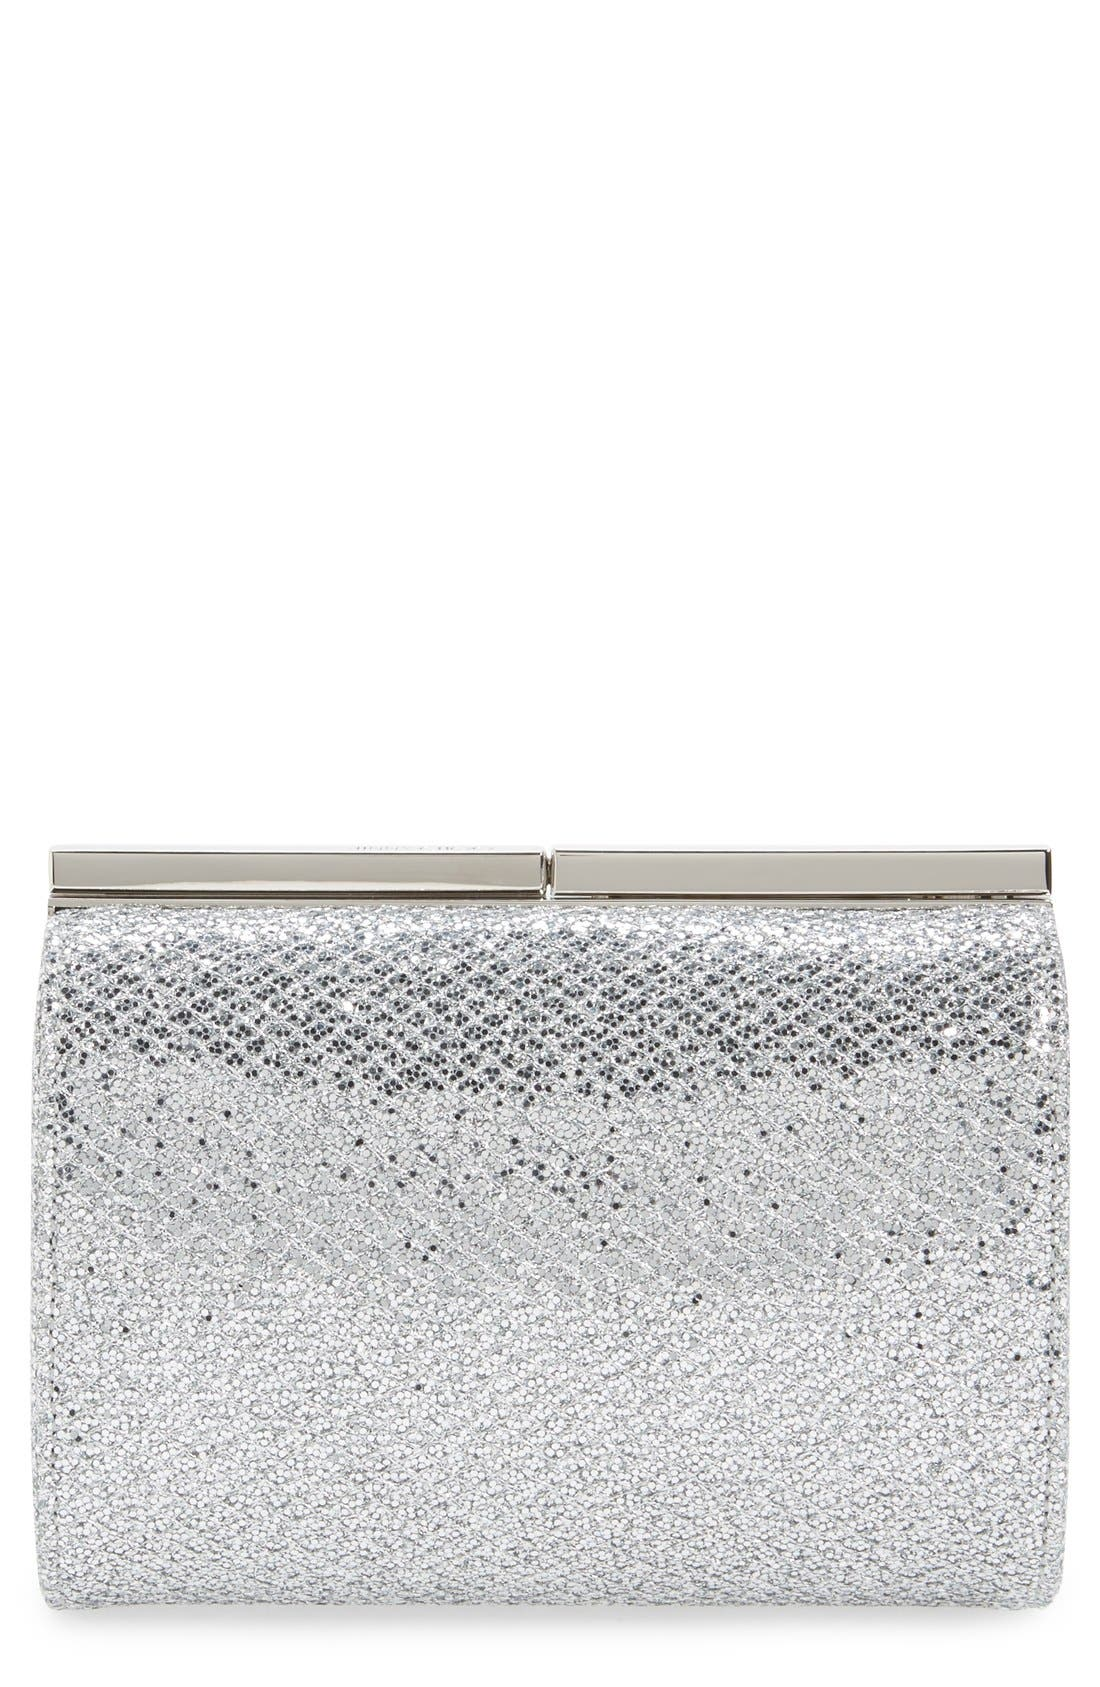 Alternate Image 1 Selected - Jimmy Choo 'Cate' Glitter Box Clutch